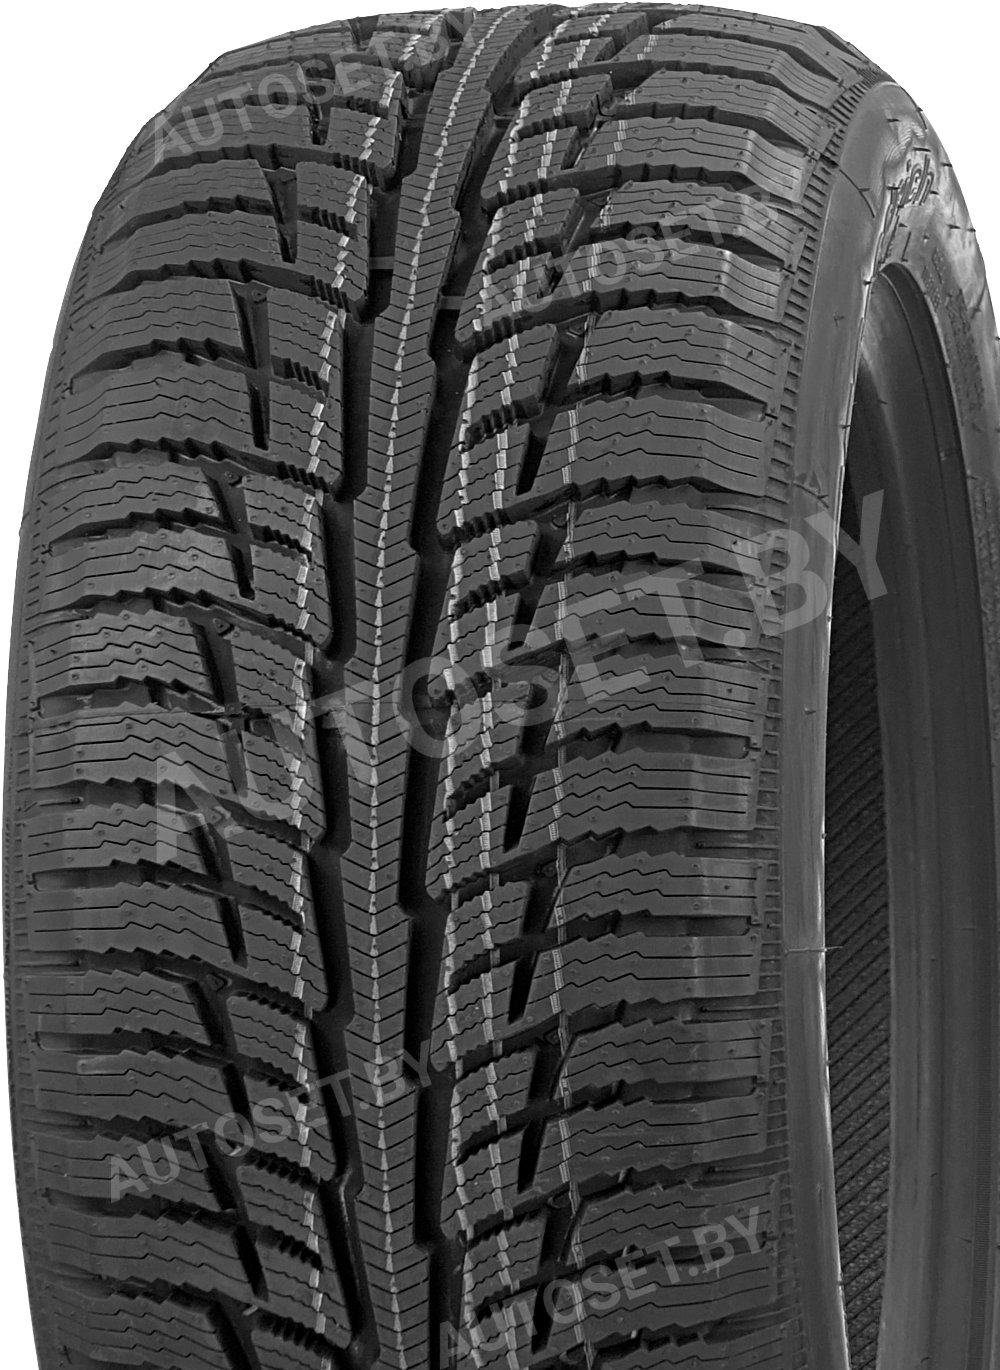 Зимняя шина BFGOODRICH Winter T/A KSI – вид 2